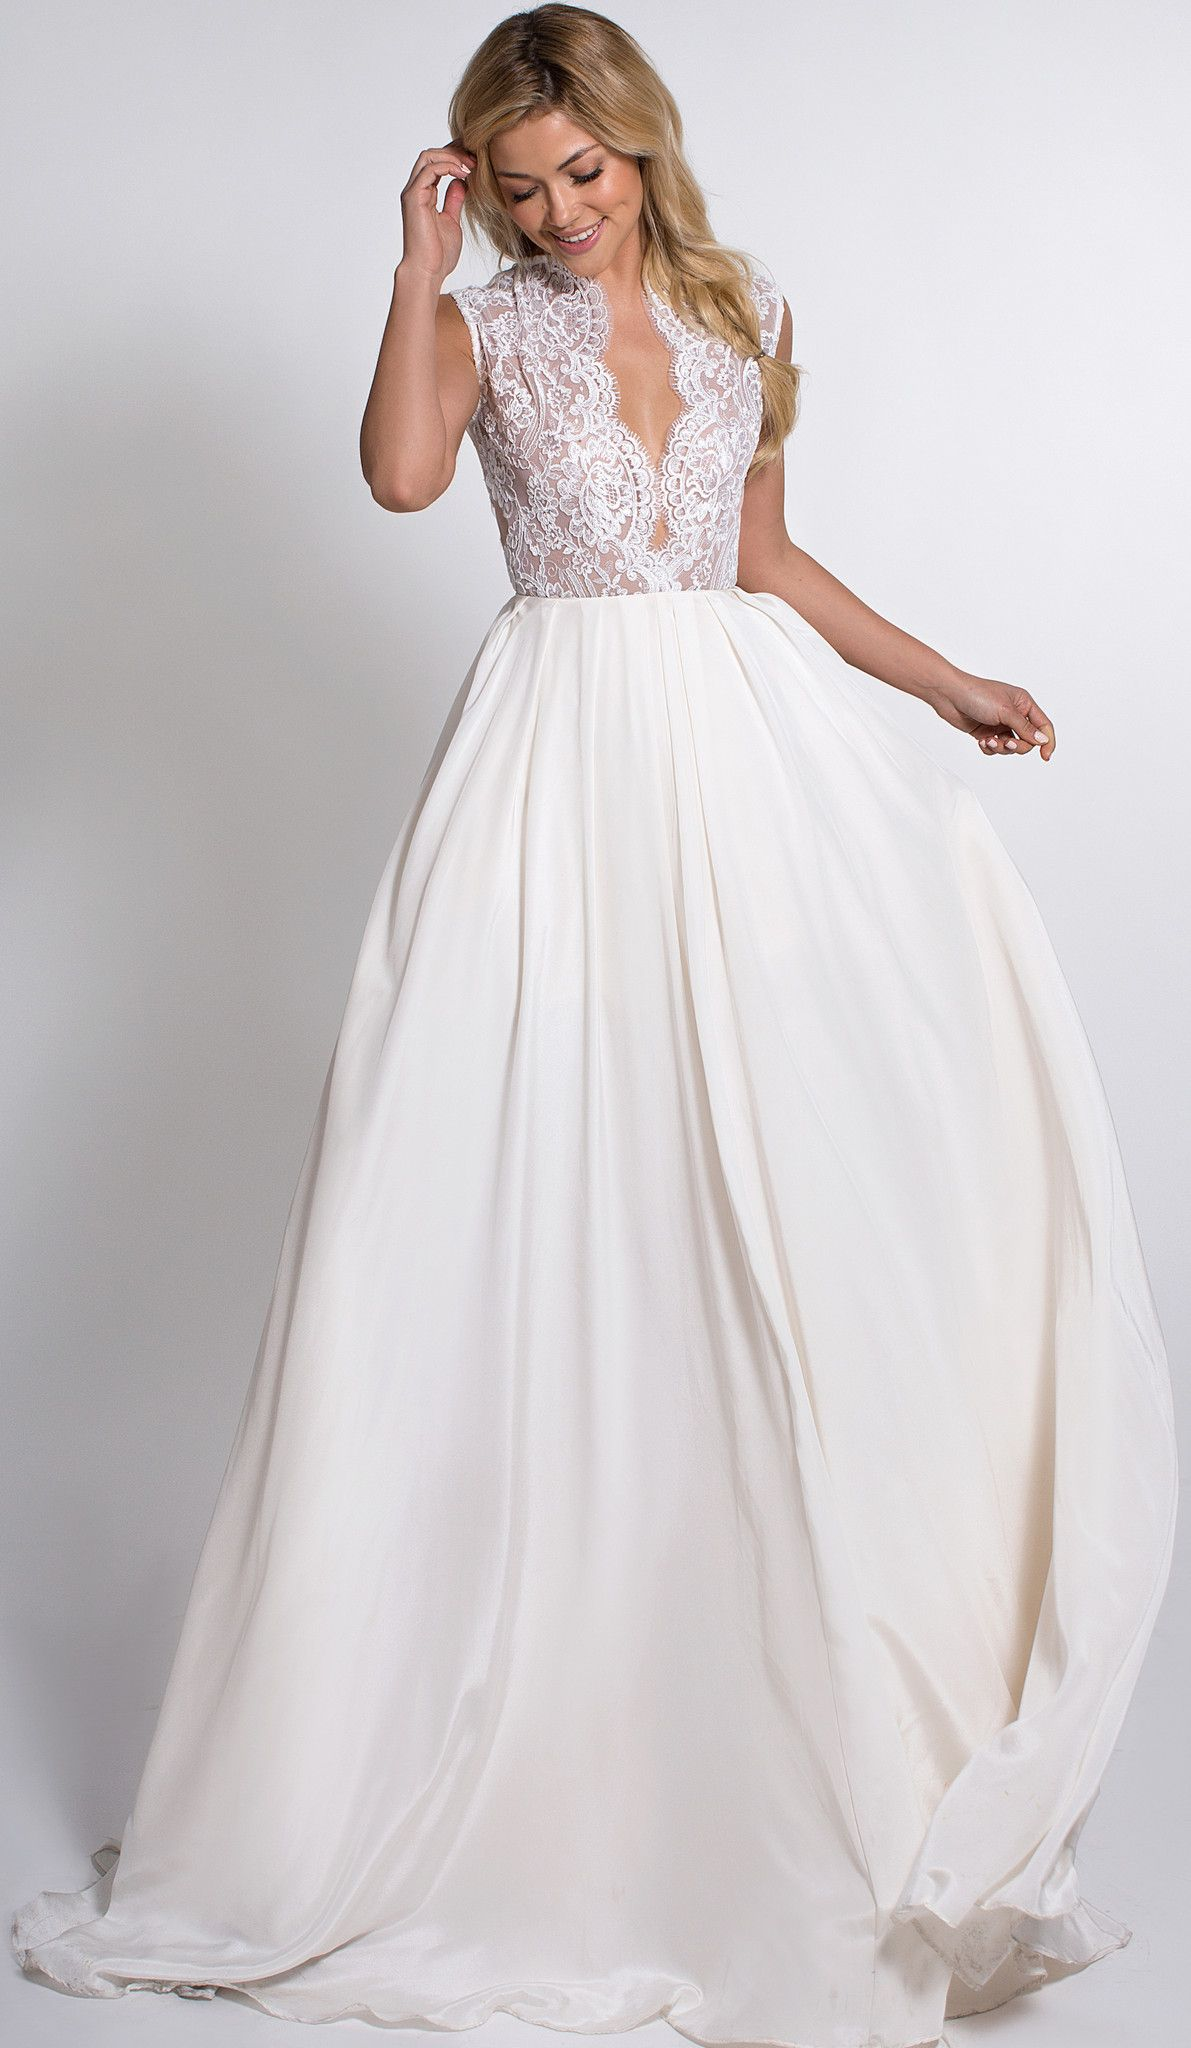 tres jolie gown wedding pinterest gowns wedding dress and